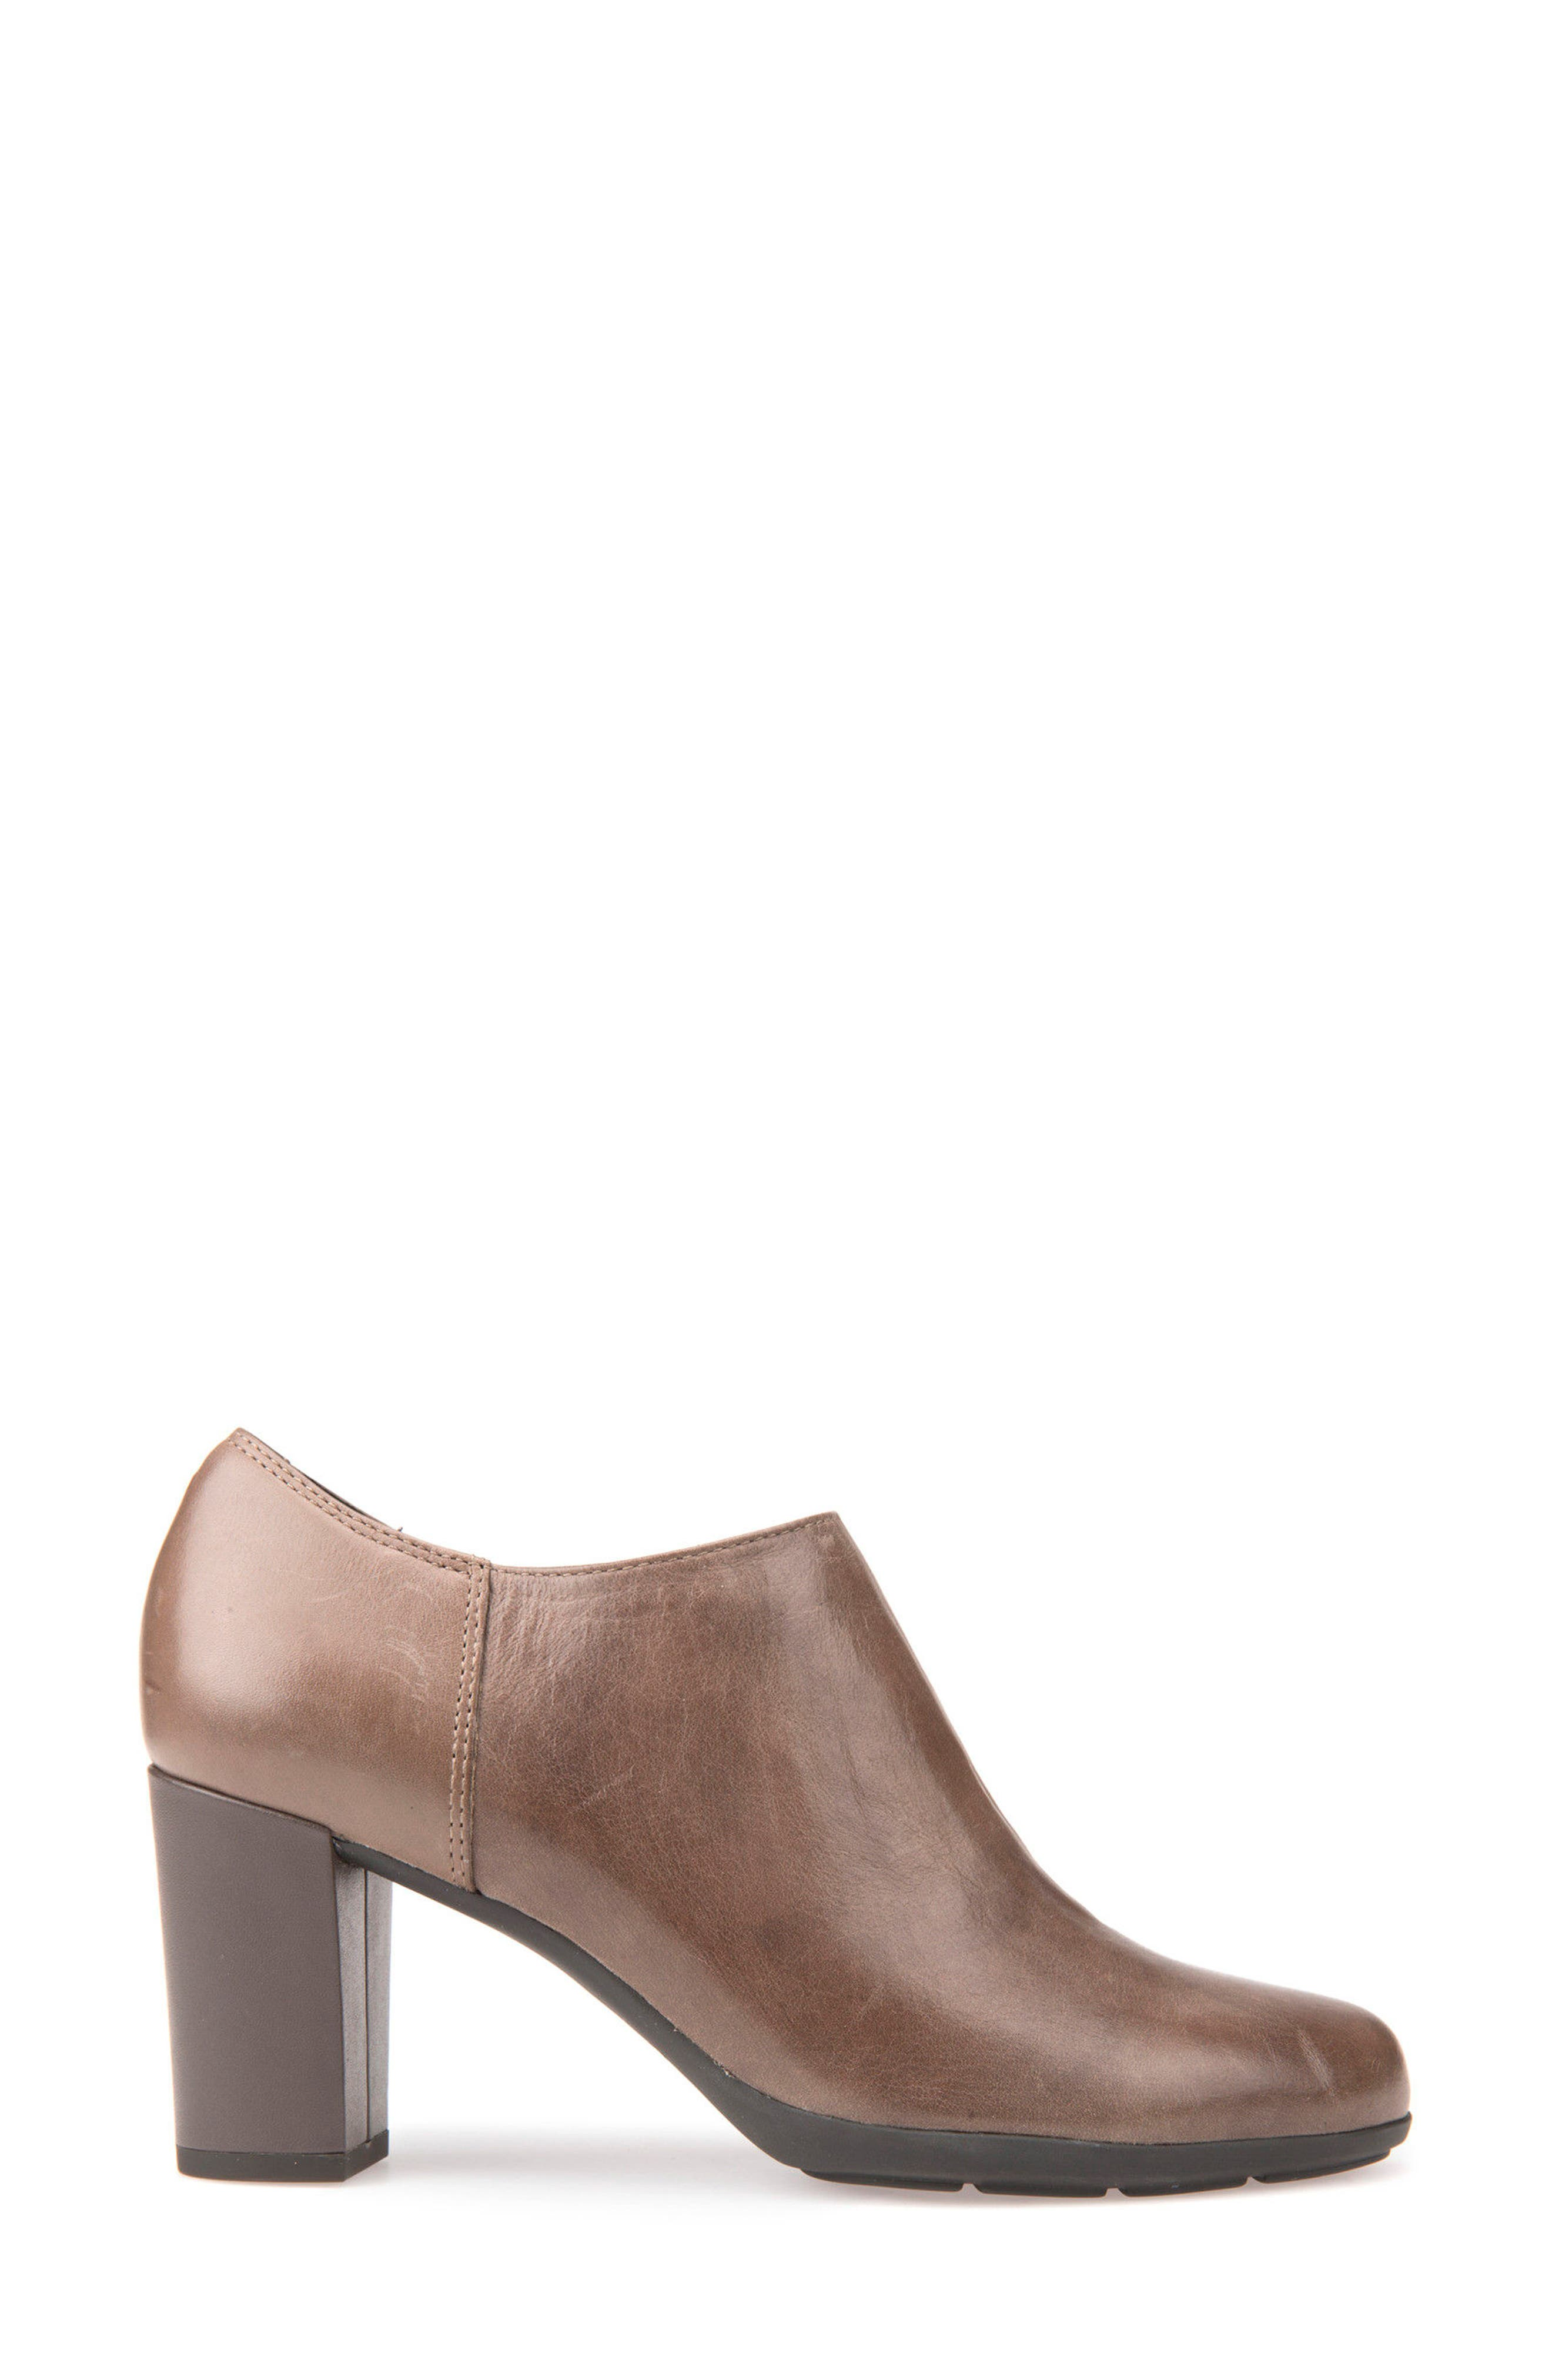 Annya Bootie,                             Alternate thumbnail 3, color,                             TAUPE LEATHER